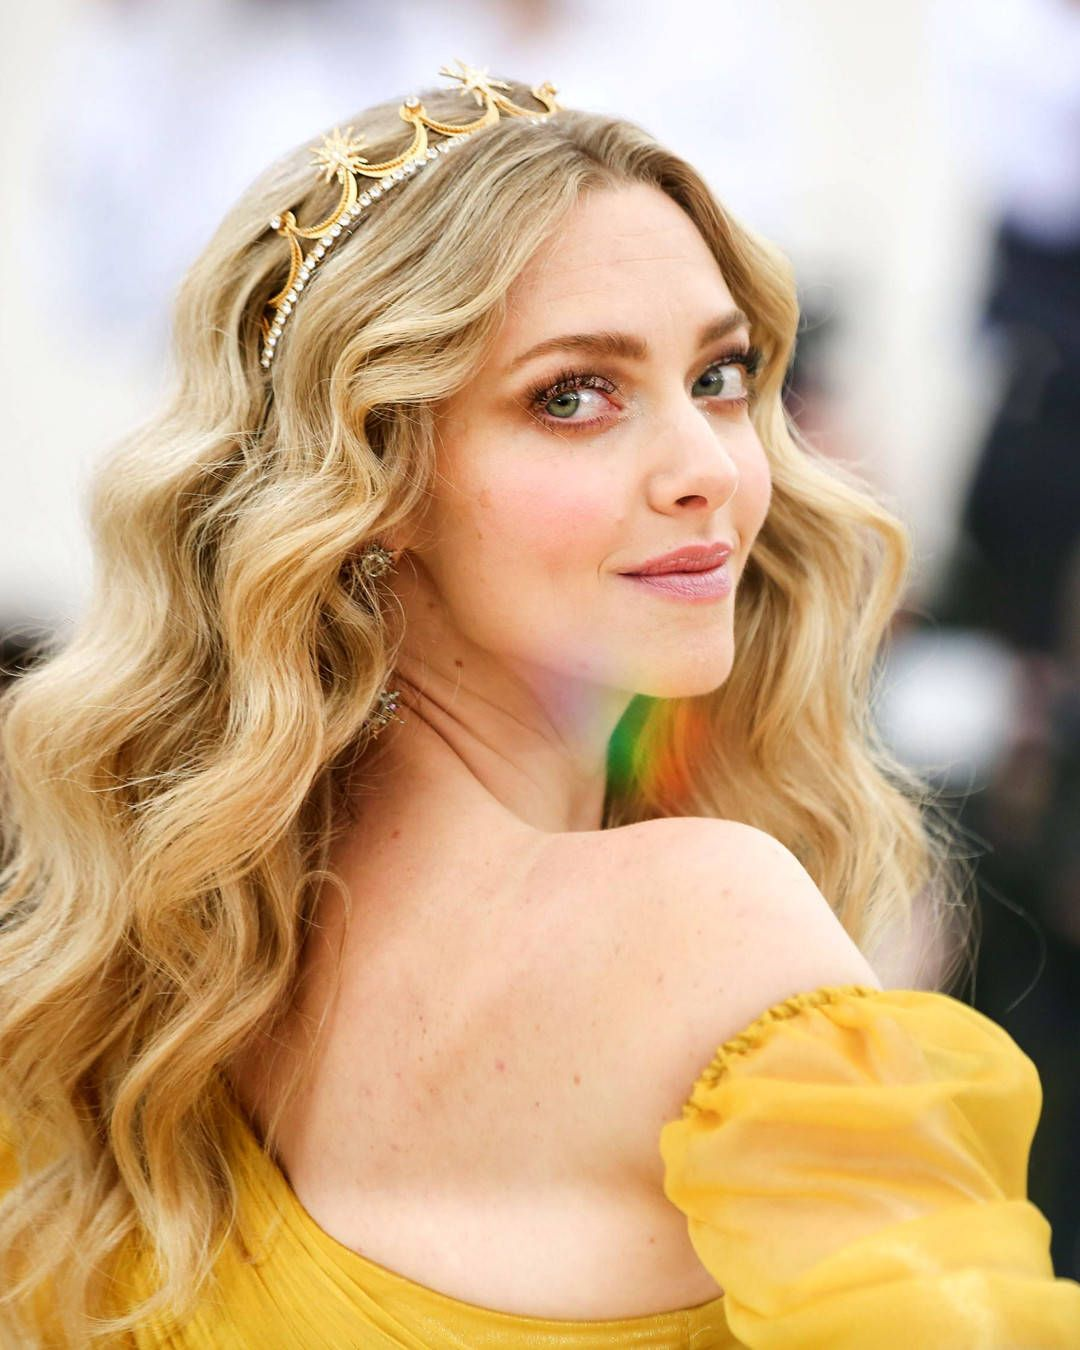 Photo of Amanda Seyfried from Best Beauty on the Met Gala 2018 Red Carpet